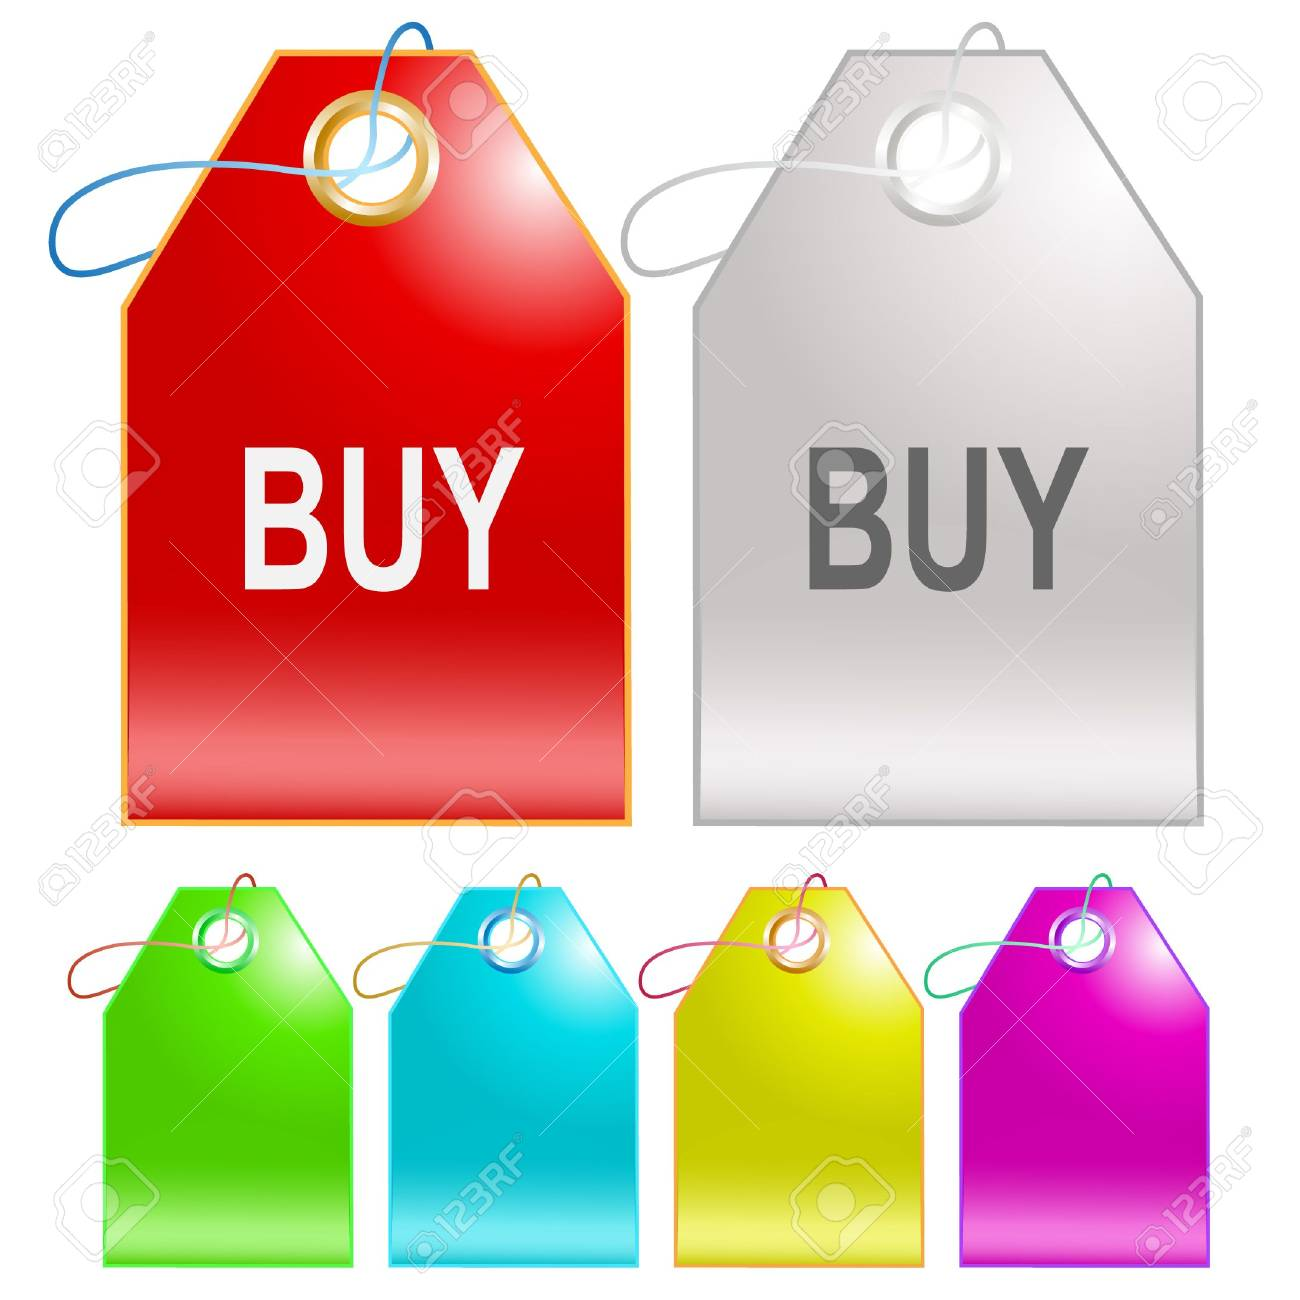 Buy. Vector tags. Stock Vector - 6846264